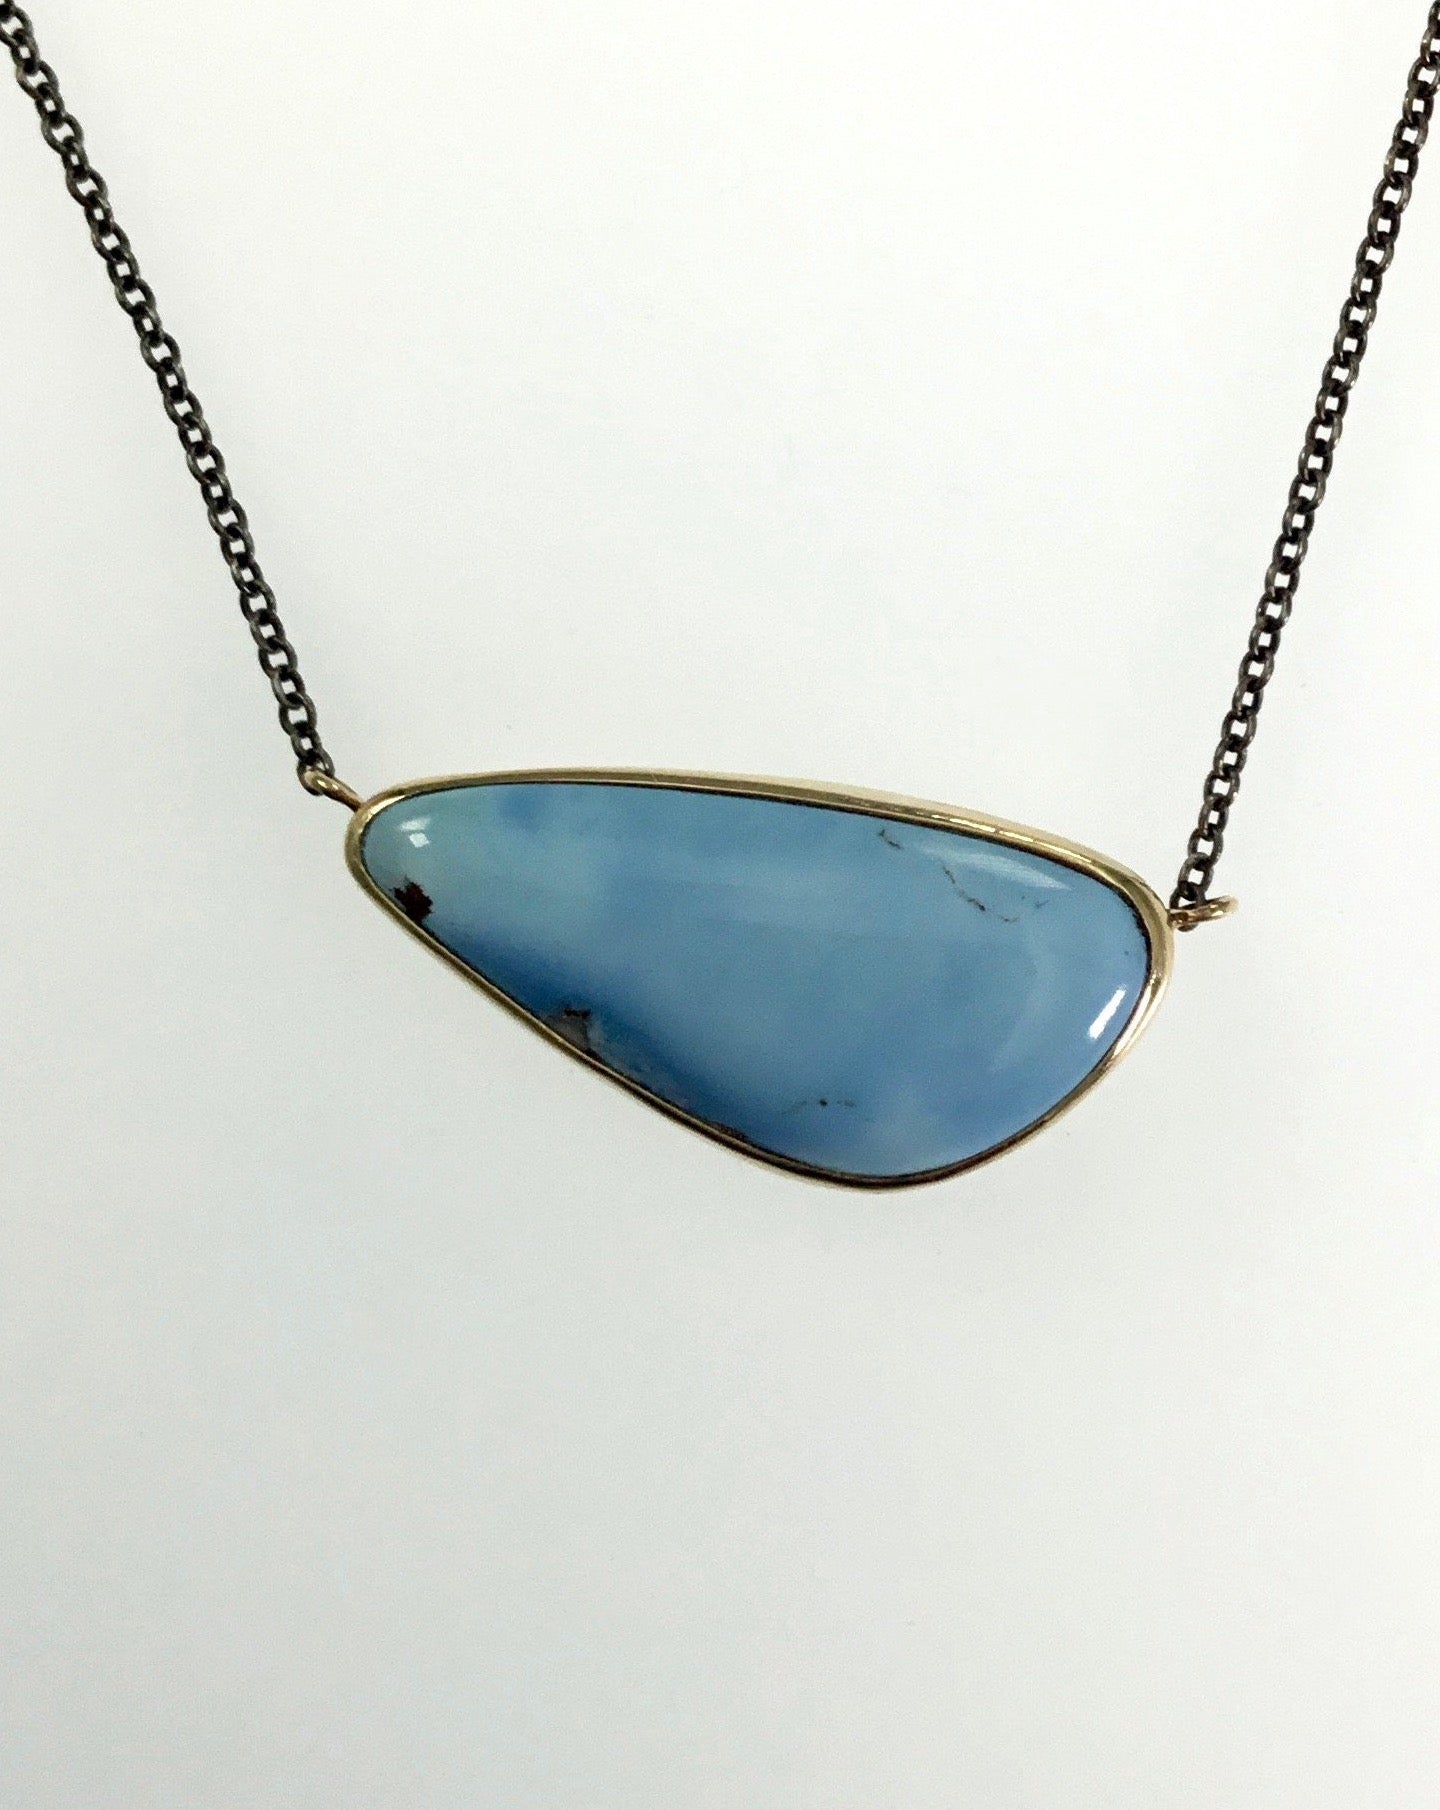 Jamie Joseph Small Turquoise Necklace